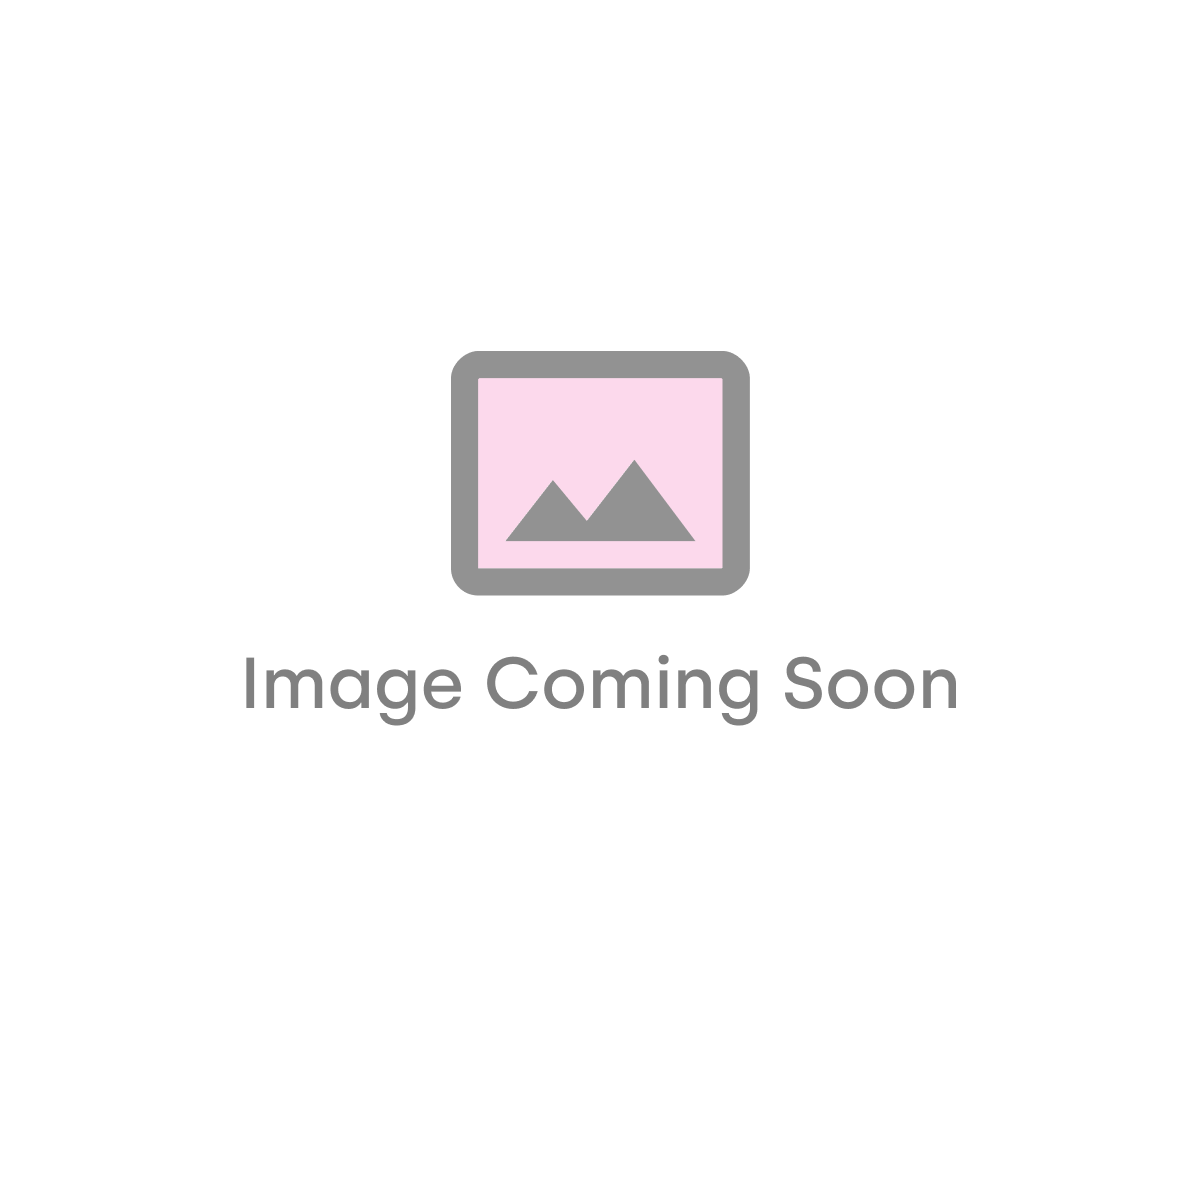 Merlyn Vivid Sublime 800mm Pivot Shower Door (13735)